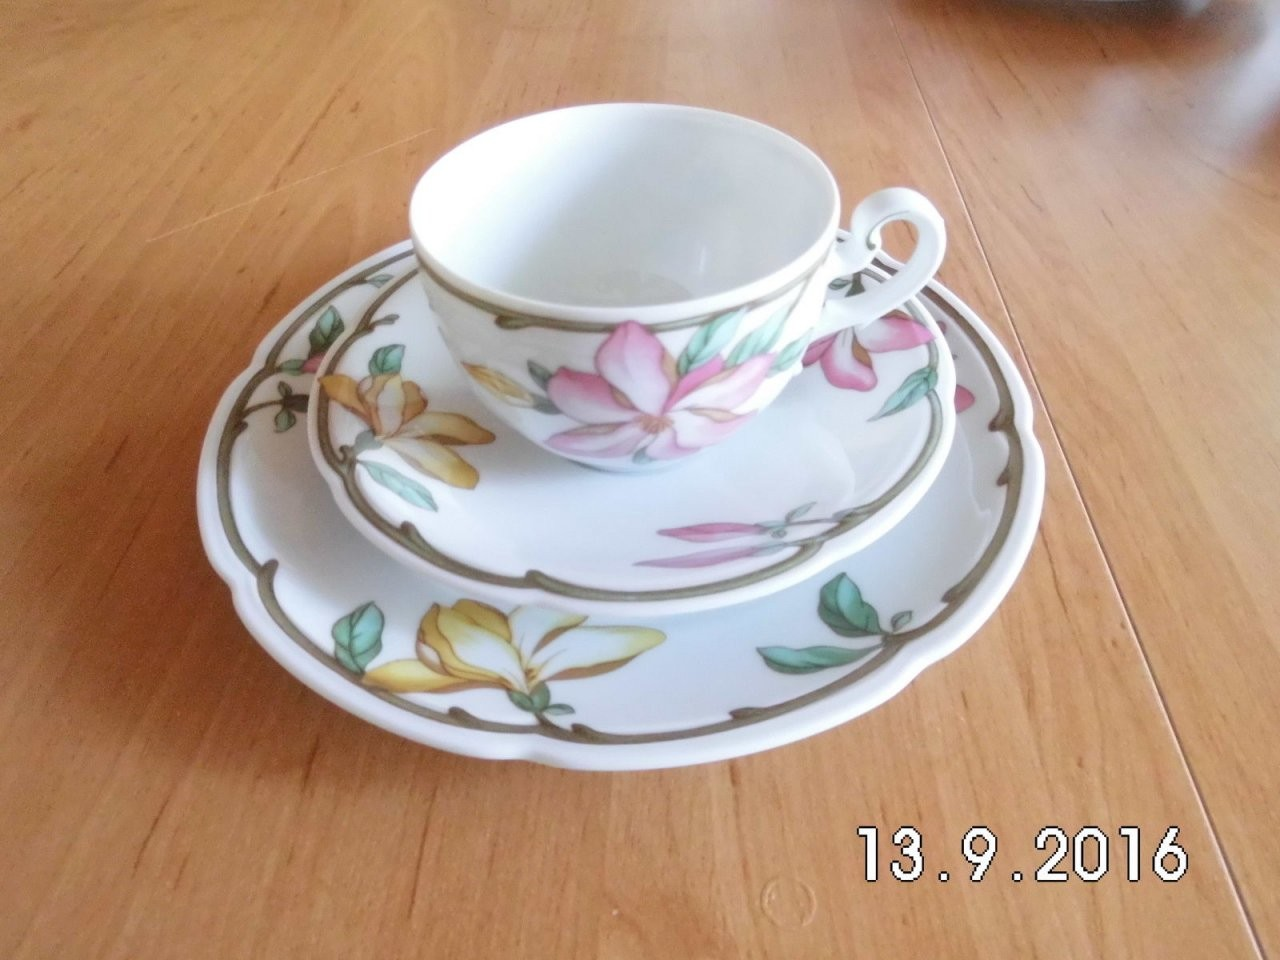 Villeroy Boch Kaffeeservice Awesome Collection Villeroy  Boch Alt von Kaffeeservice Villeroy & Boch Bild